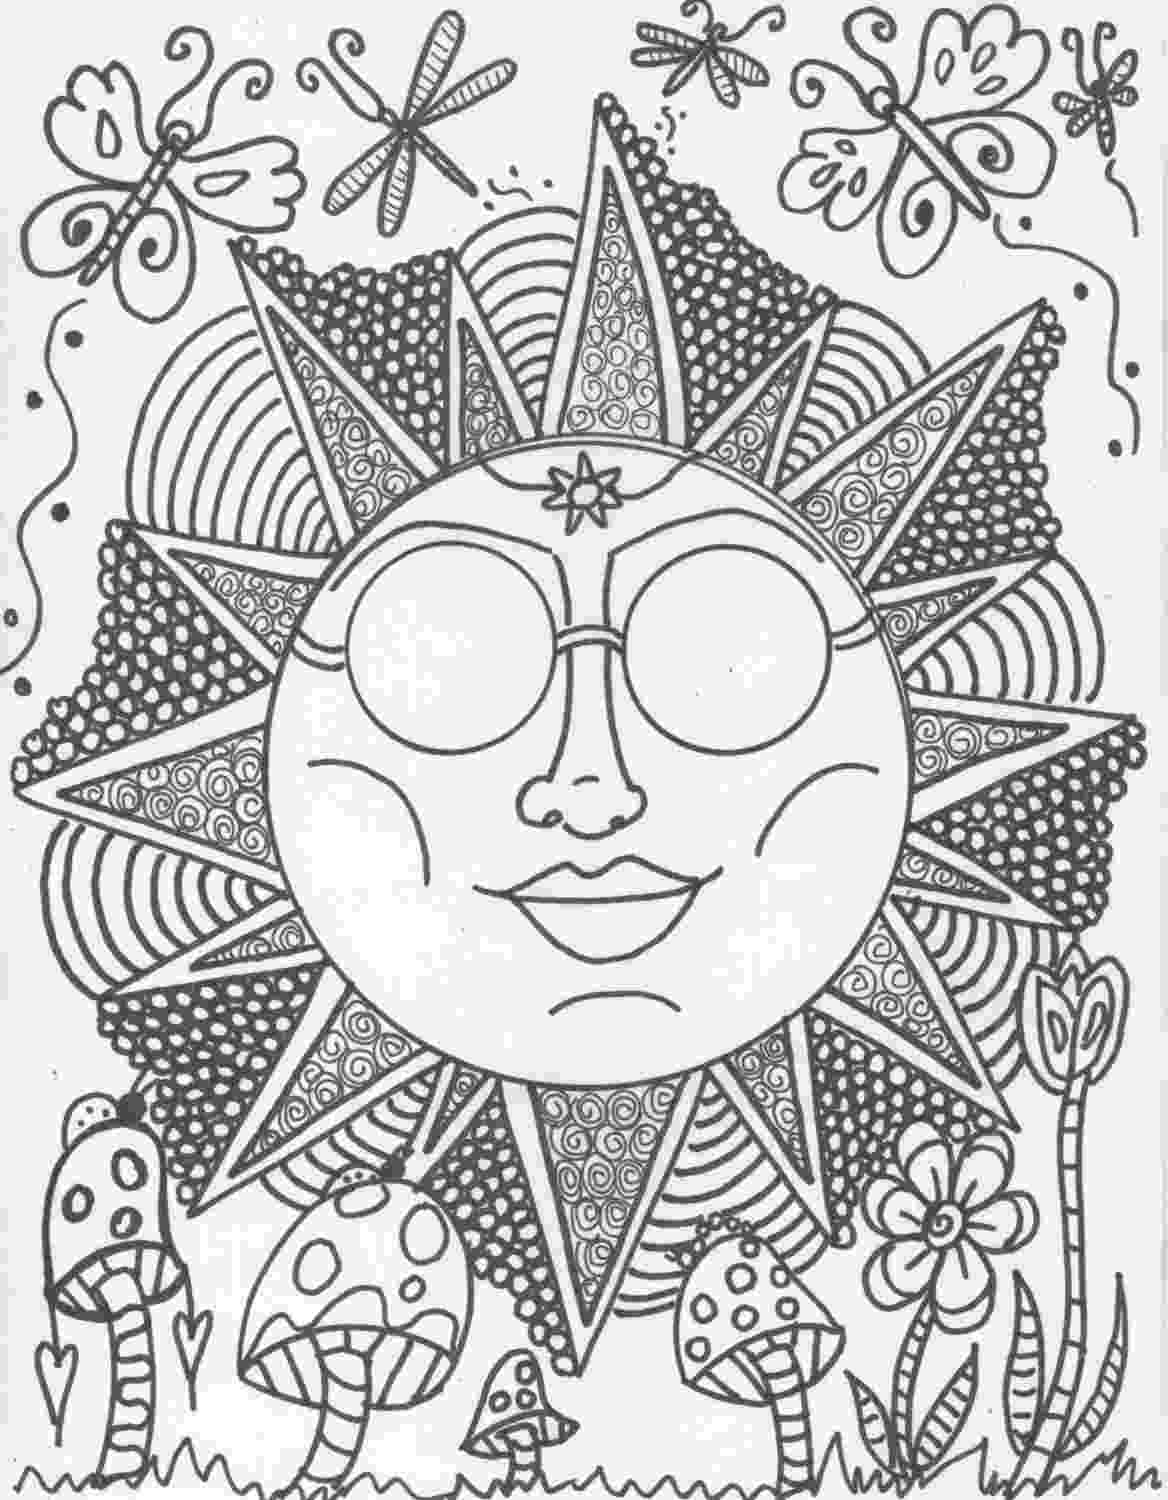 hippie coloring sheets love hippie party plant adult coloring page gift wall art sheets coloring hippie